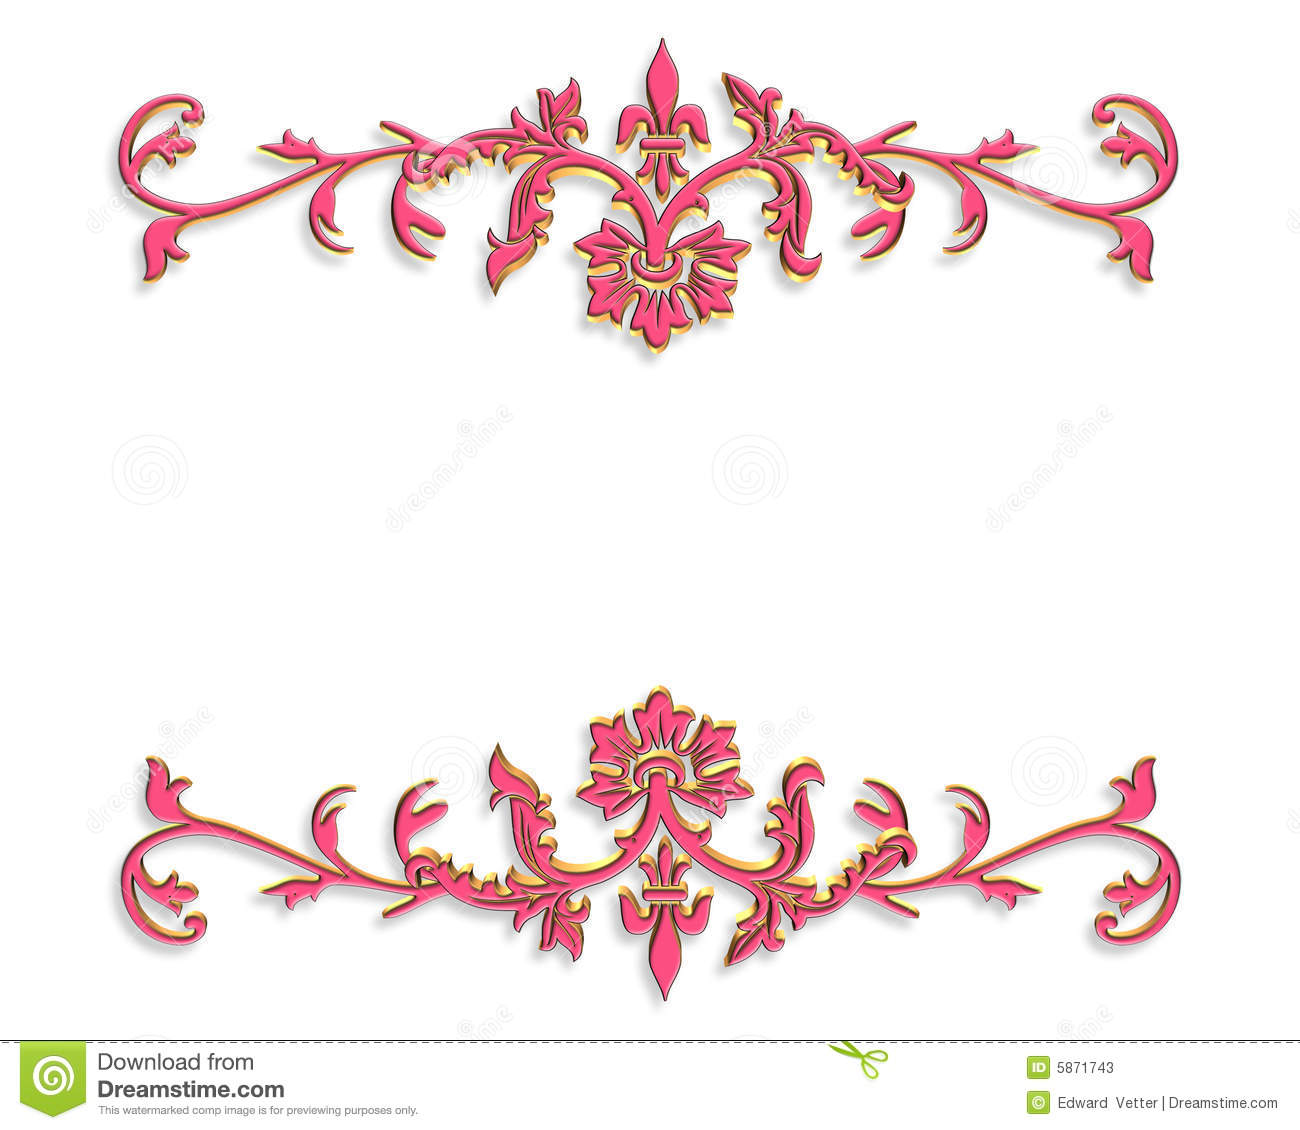 Border design 3d ornamental pink stock illustration illustration download border design 3d ornamental pink stock illustration illustration of digital card 5871743 stopboris Image collections